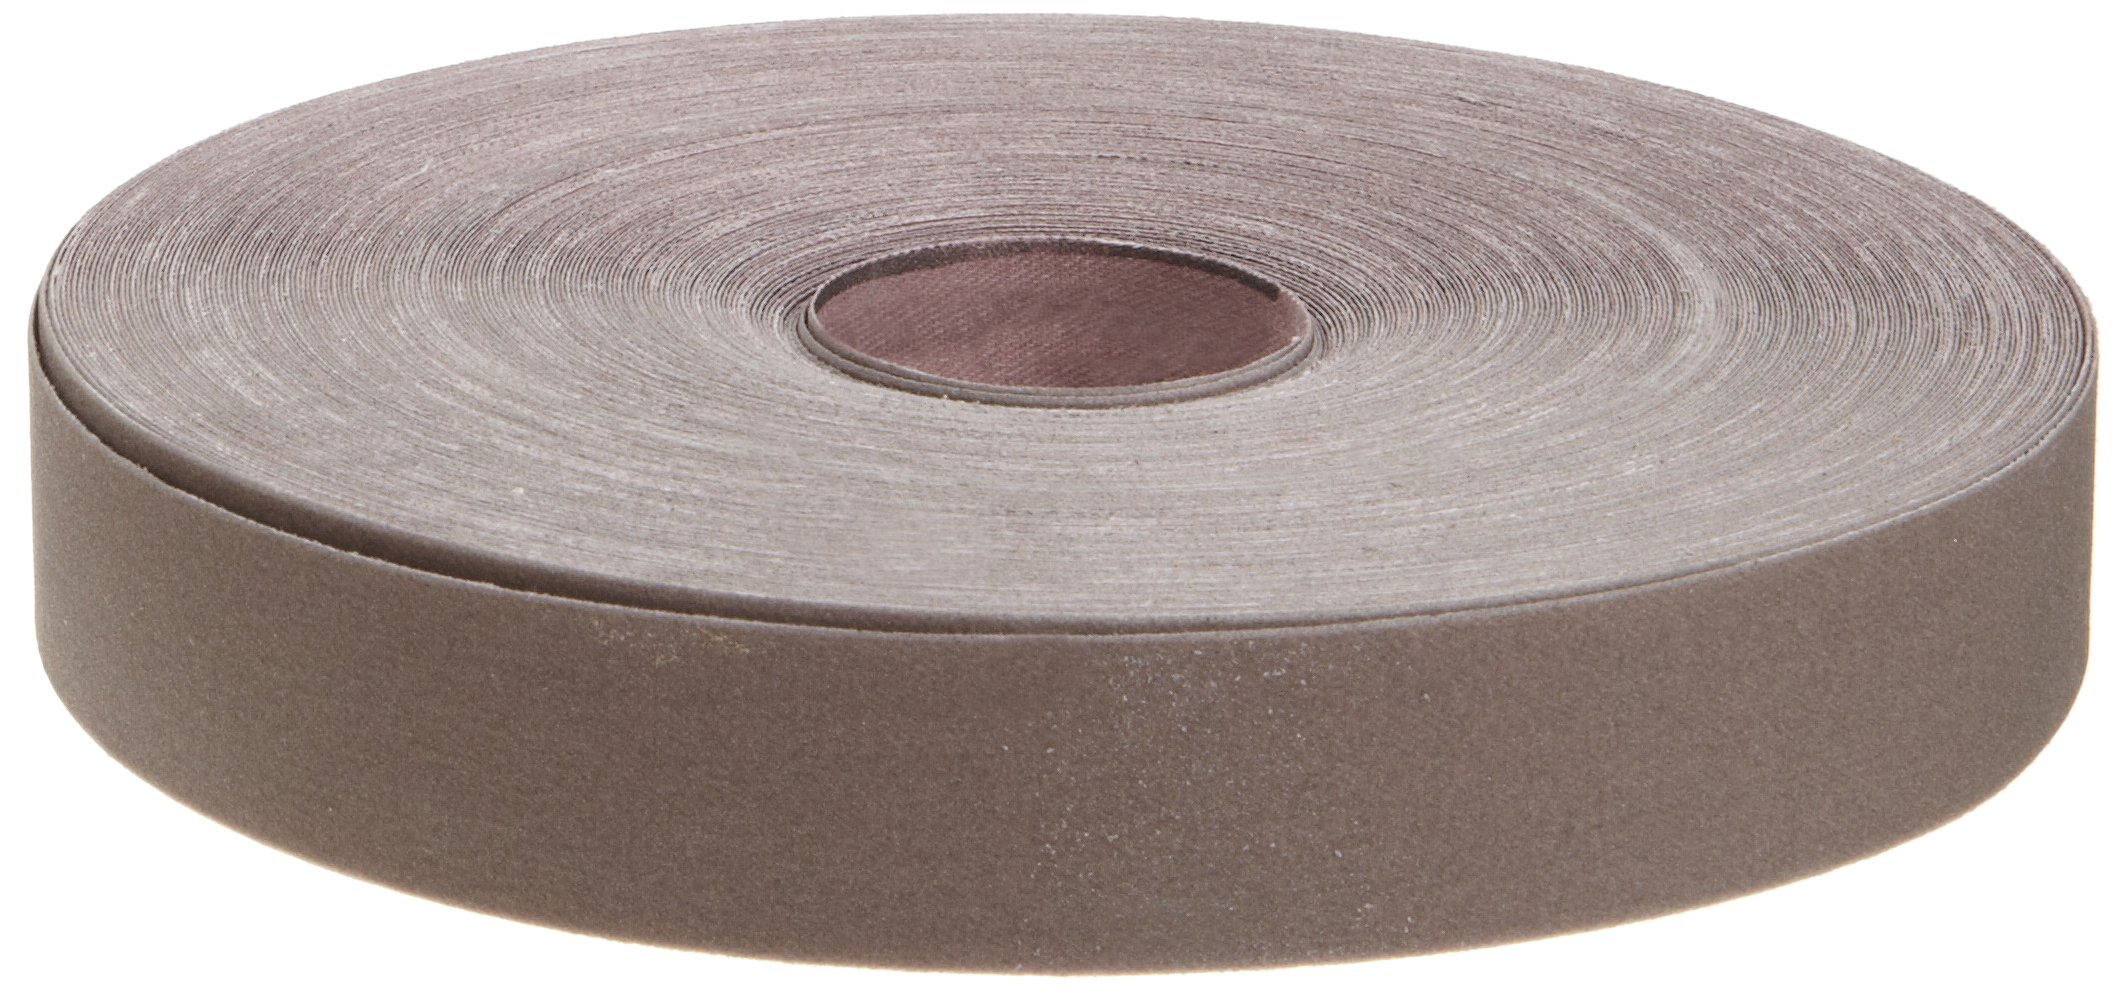 3M  Utility Cloth Roll 211K, 50yd Length, 1'' Width, 320 Grit (Pack of 1)